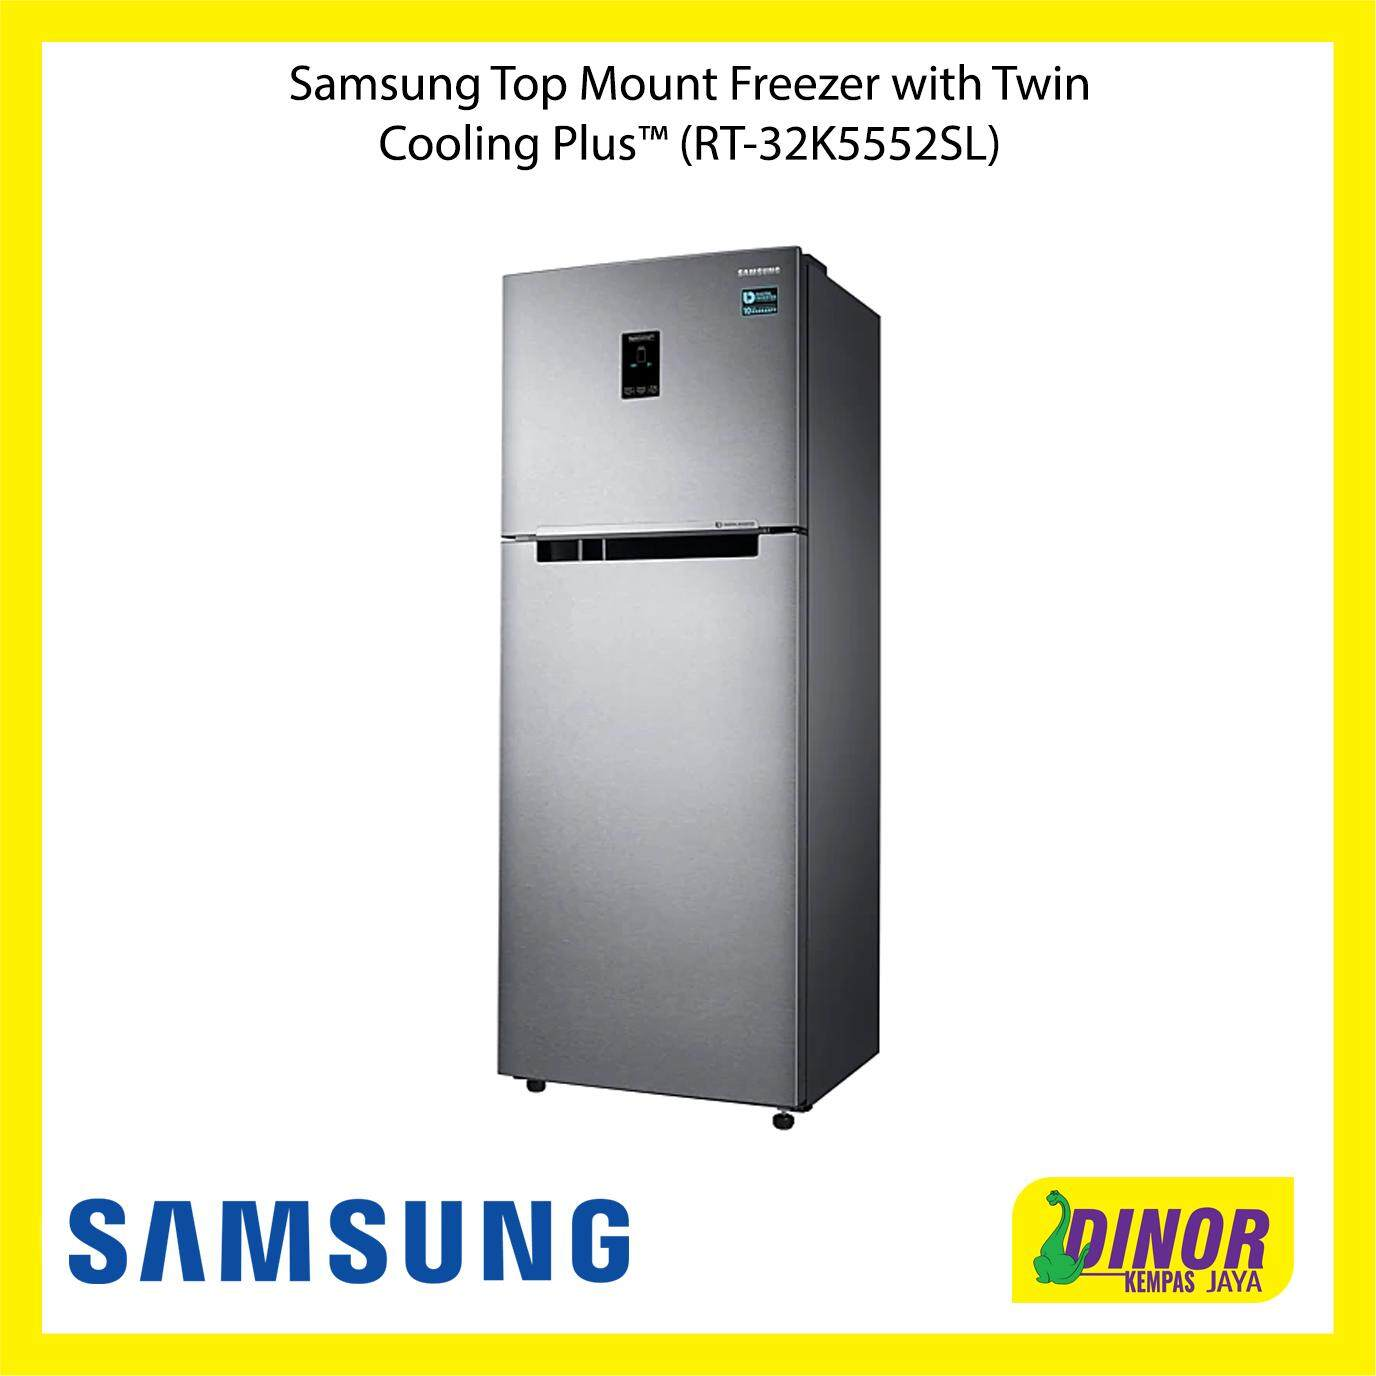 Samsung Top Mount Freezer with Twin Cooling Plus™ (RT-32K5552SL)